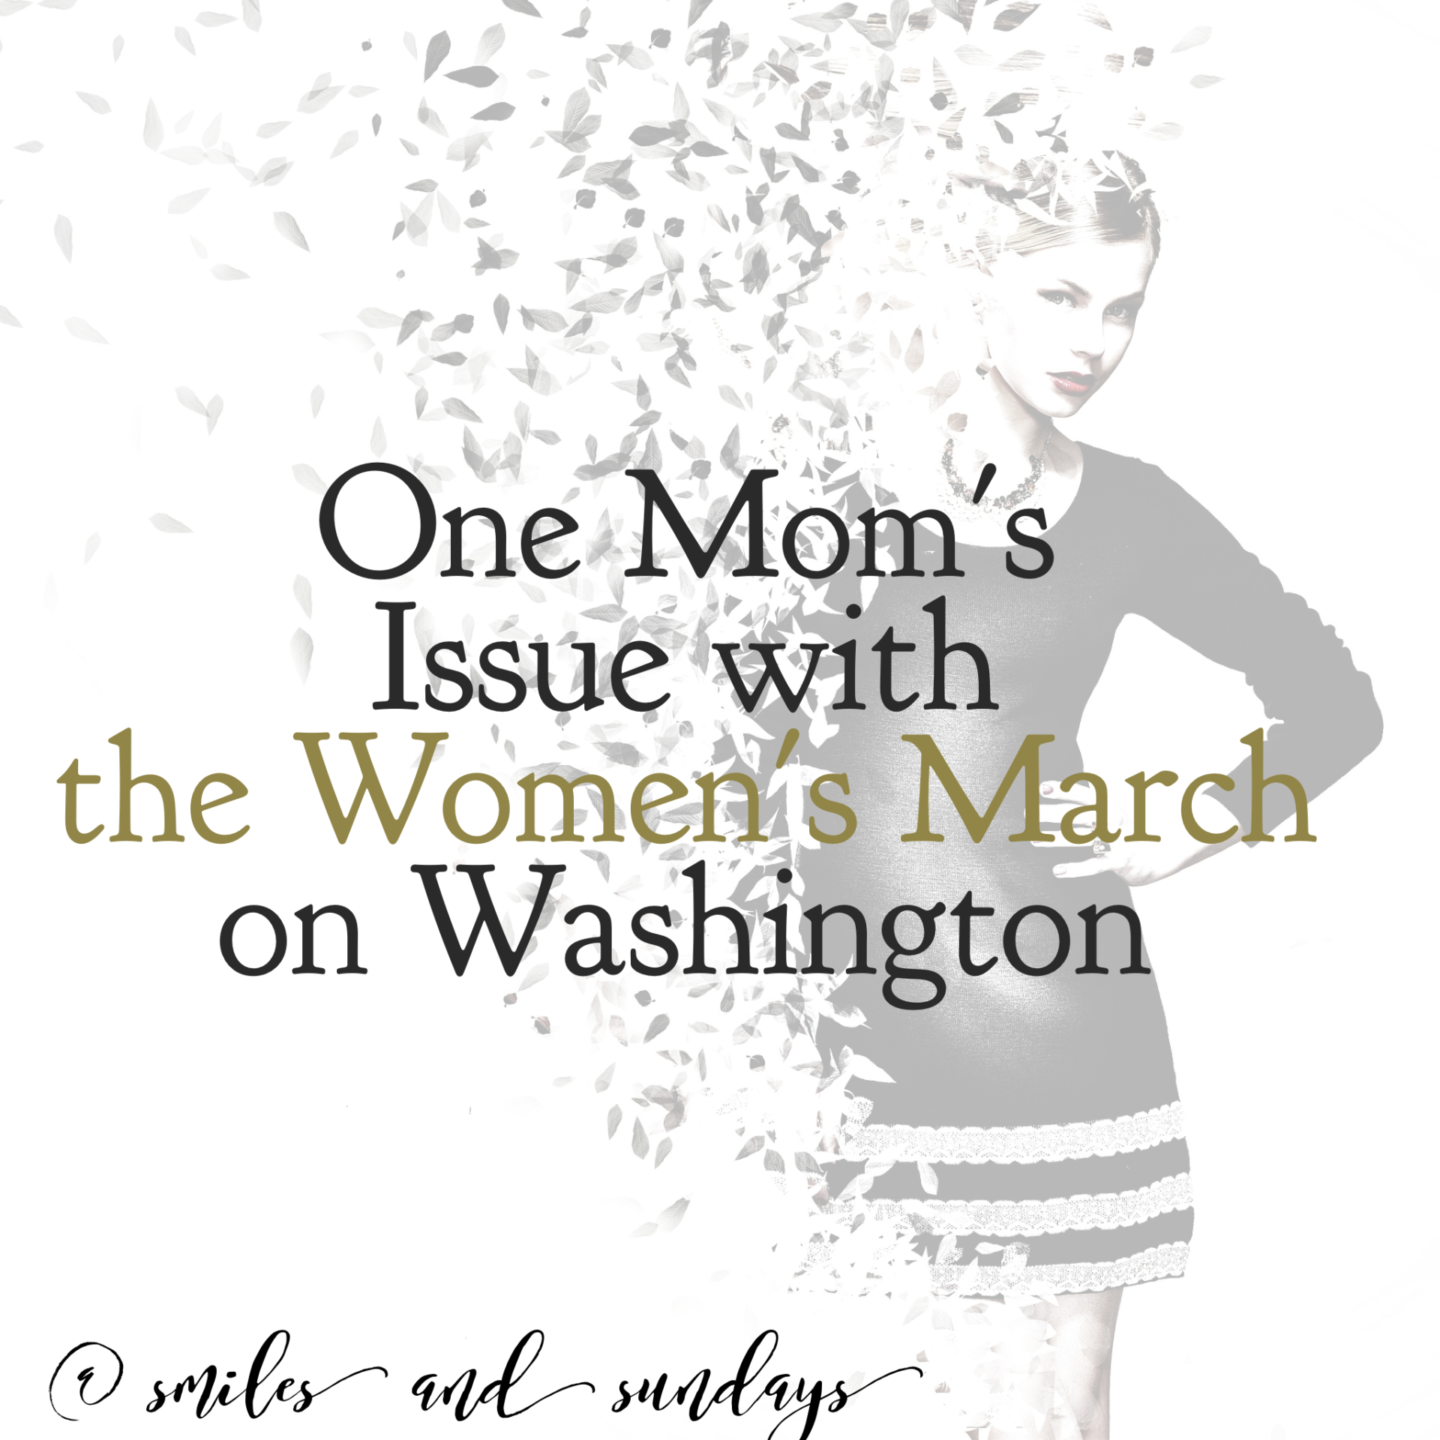 One Mom's Issue with the Women's March on Washington